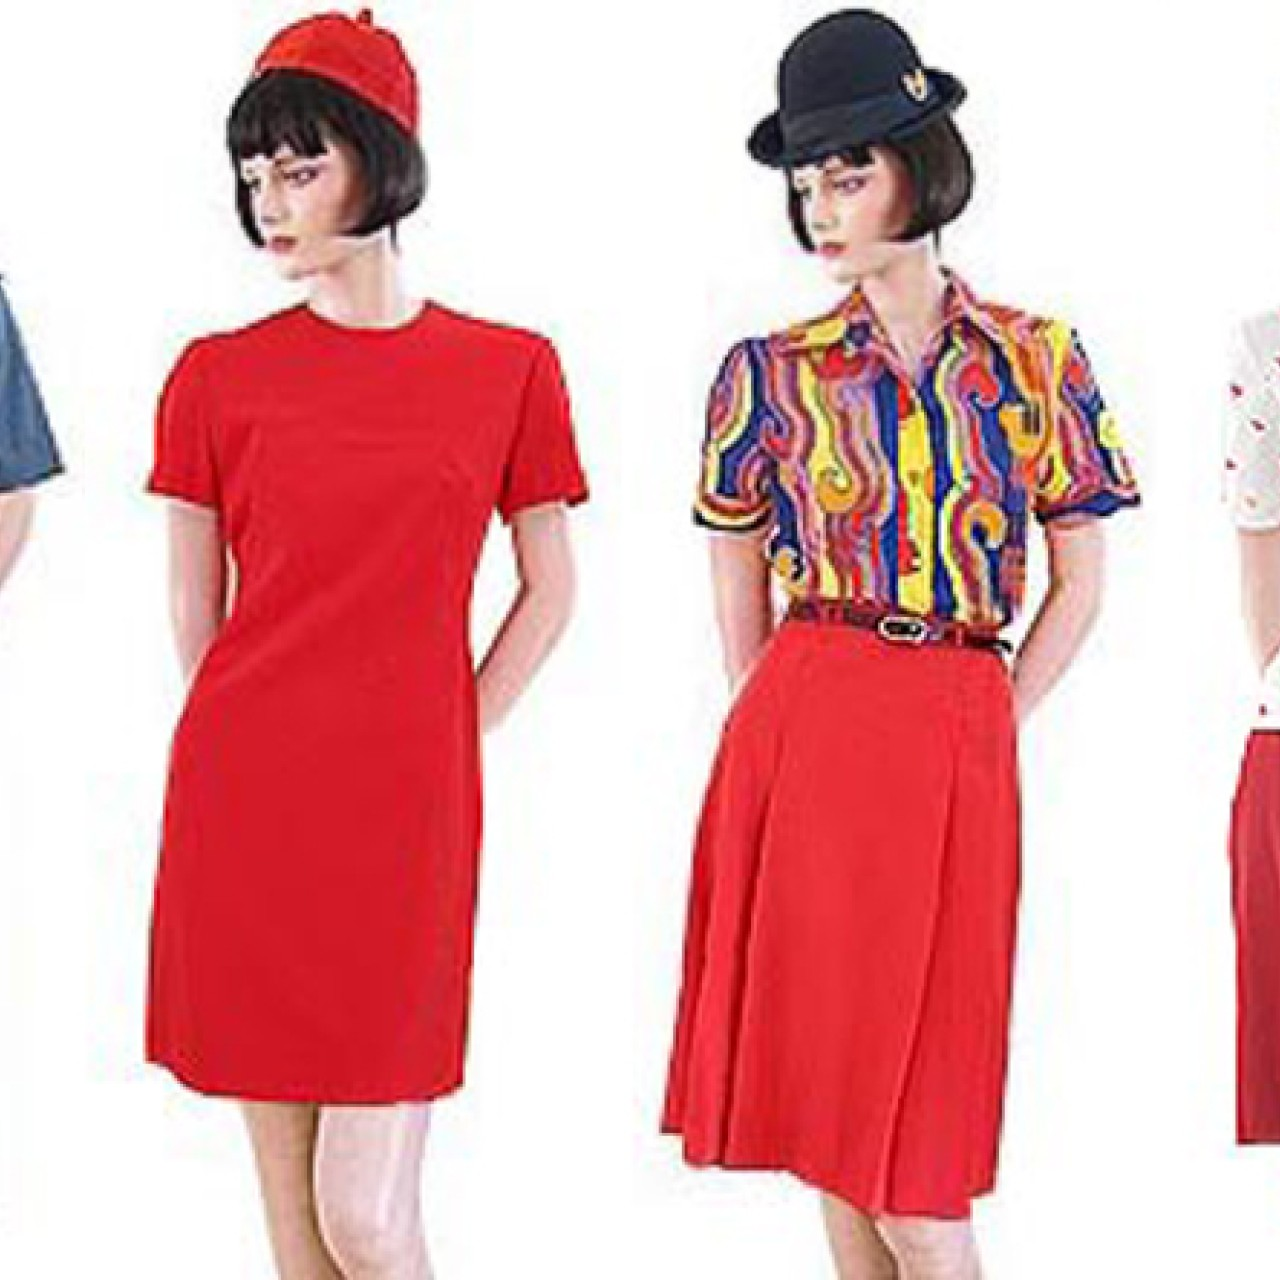 High fashion: How Cathay Pacific's uniforms have evolved through the